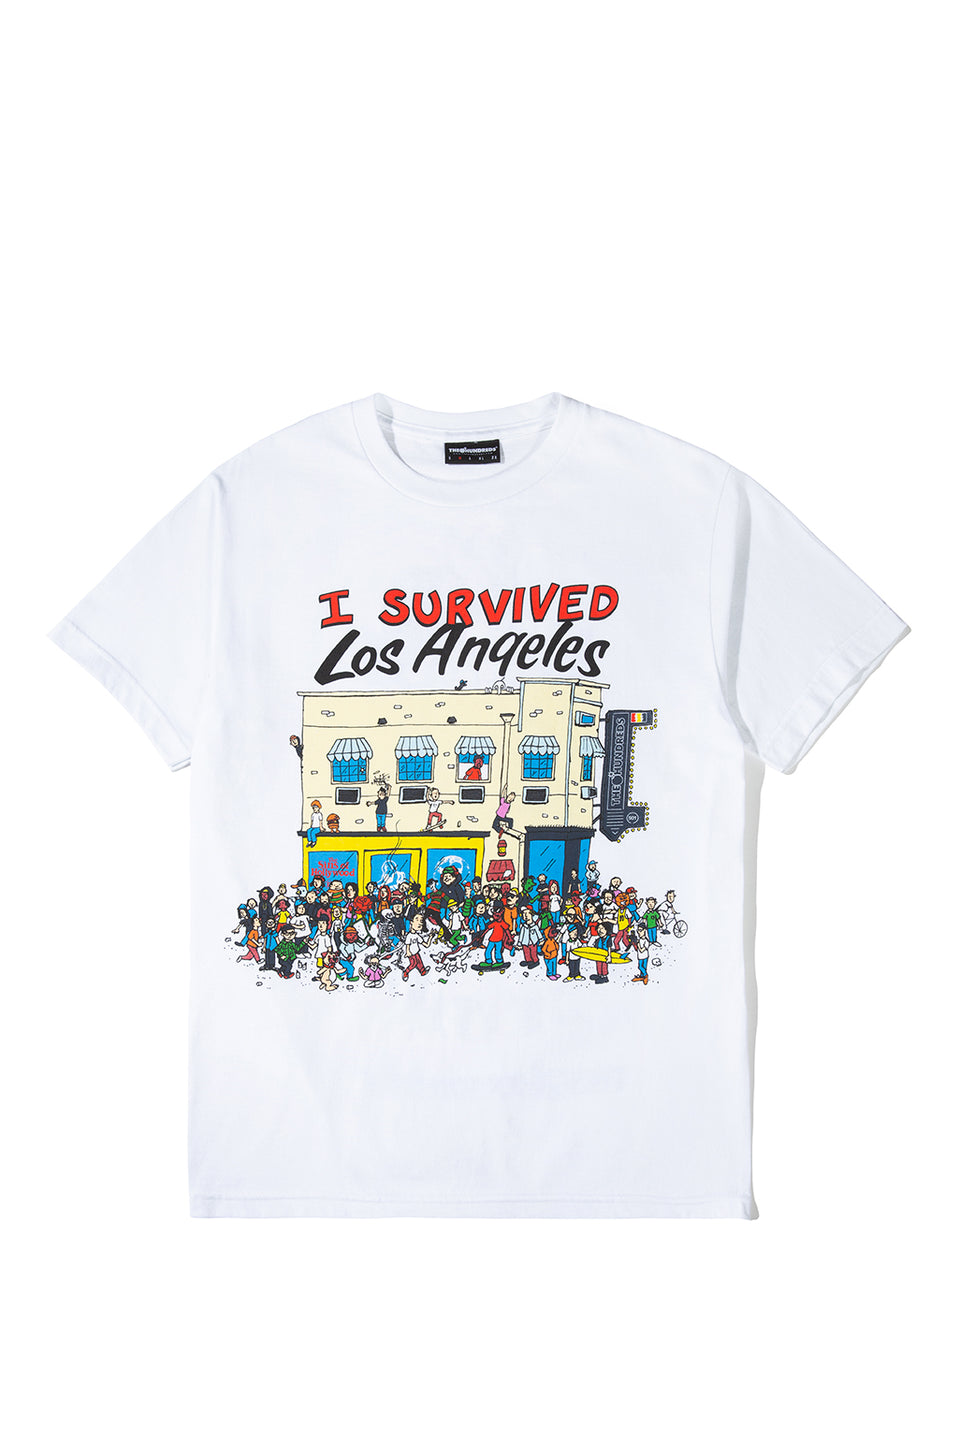 I Survived T-Shirt